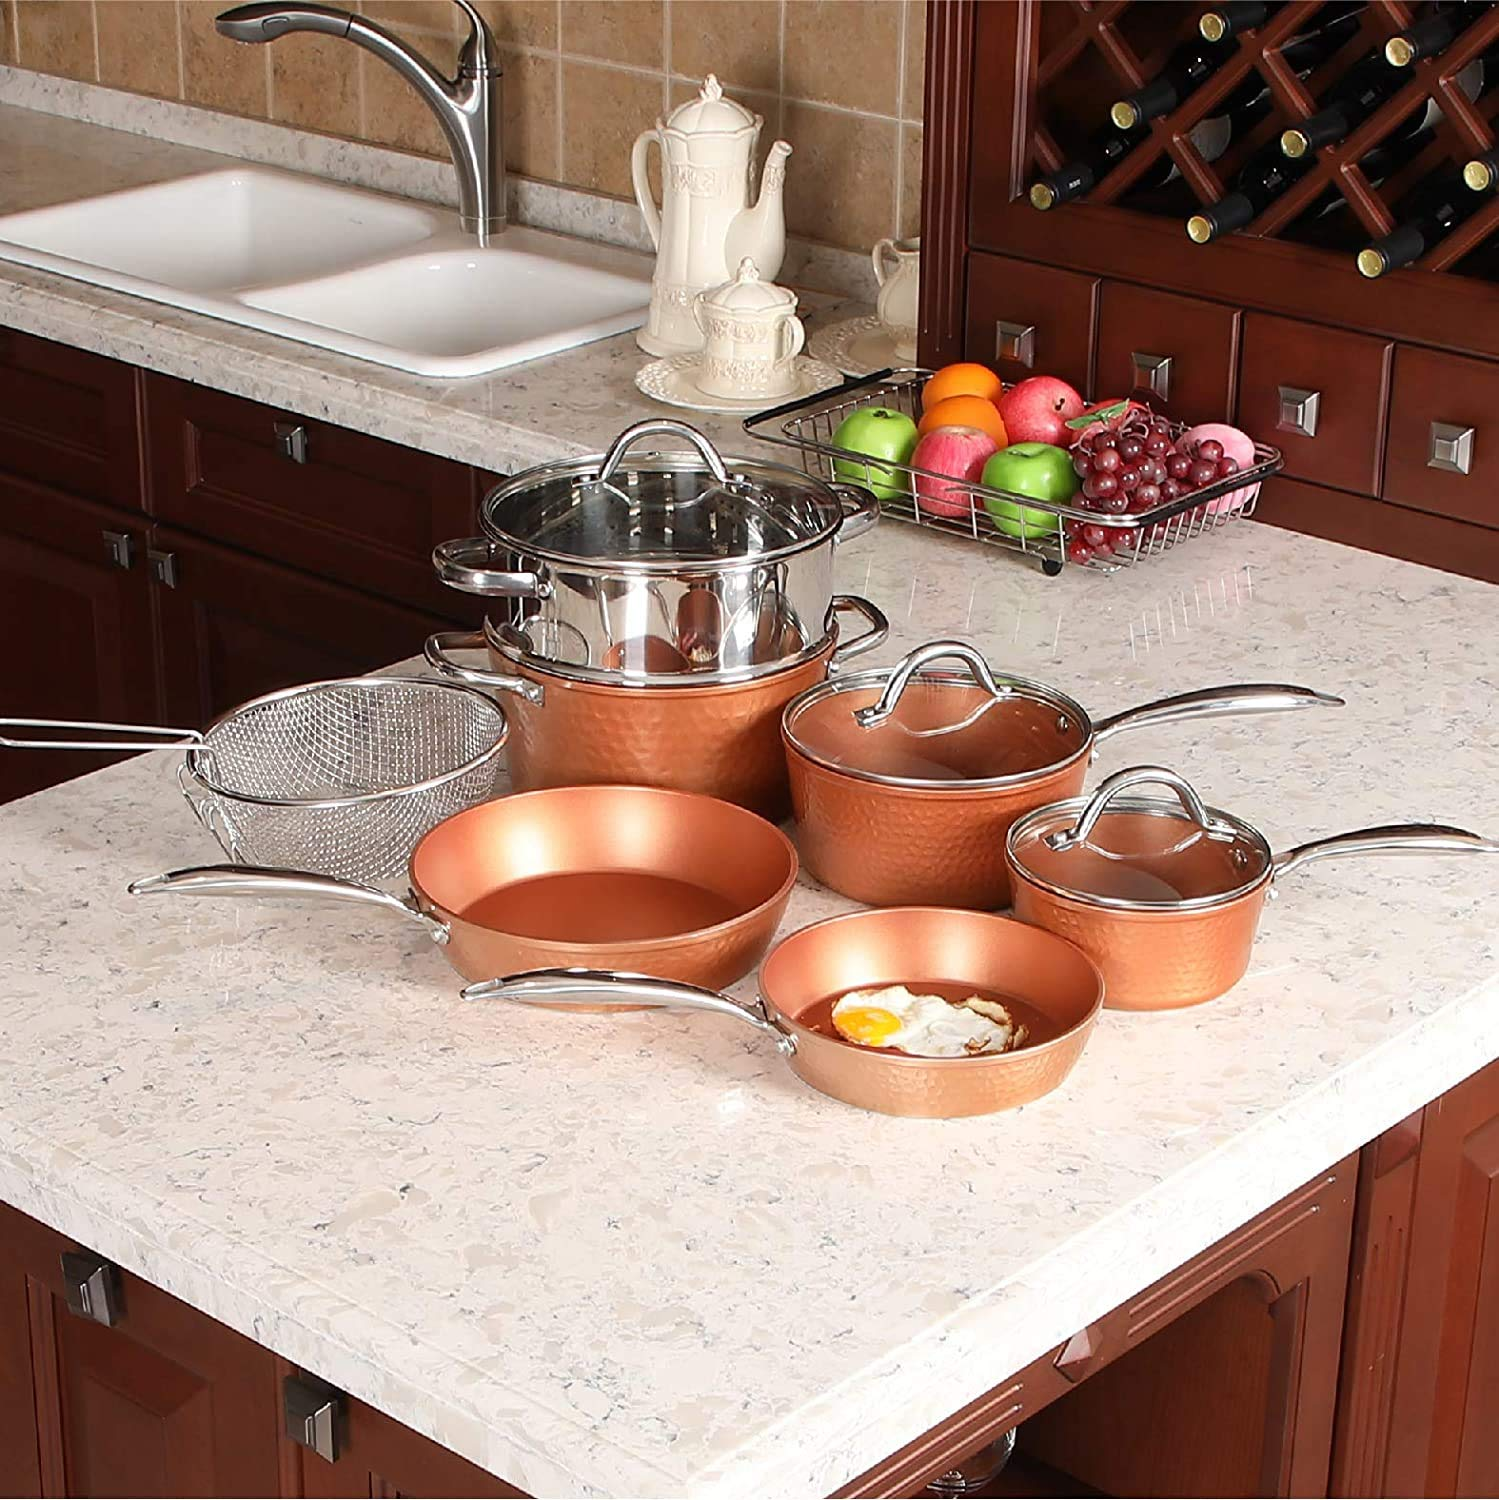 Alphamarts coupon: Kitchen Academy Red Copper Hammered Induction Cookware Set Nonstick 10 Piece-Hammered